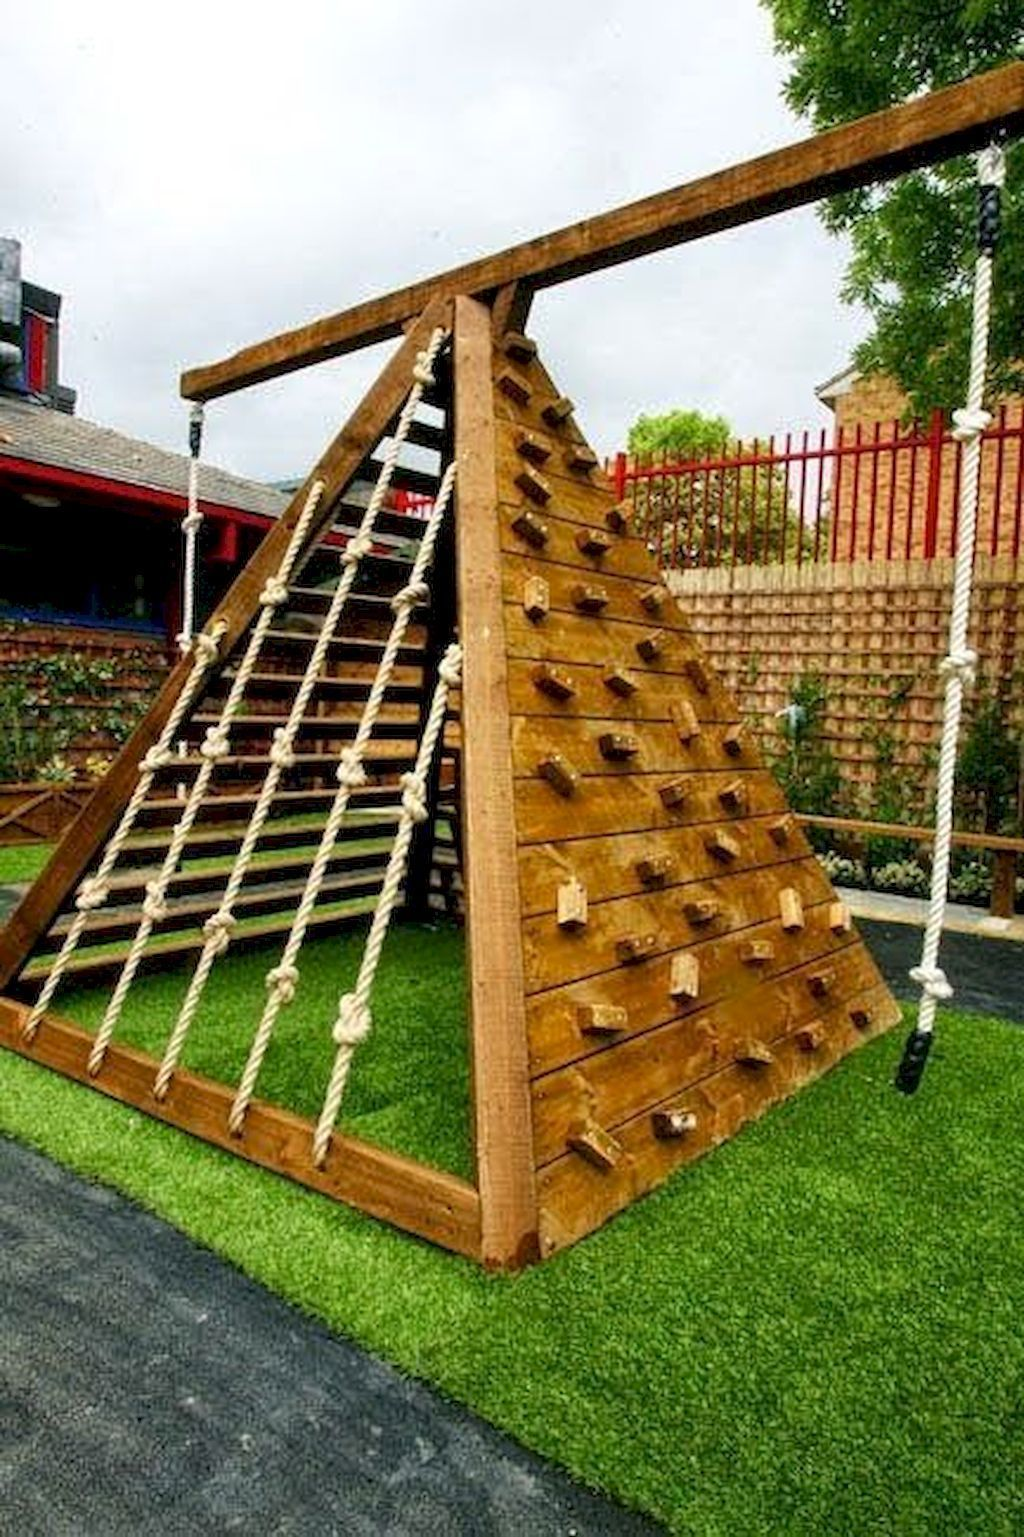 Cool 30 DIY Playground Project Ideas for Backyard Landscaping  https://insidecorate.com